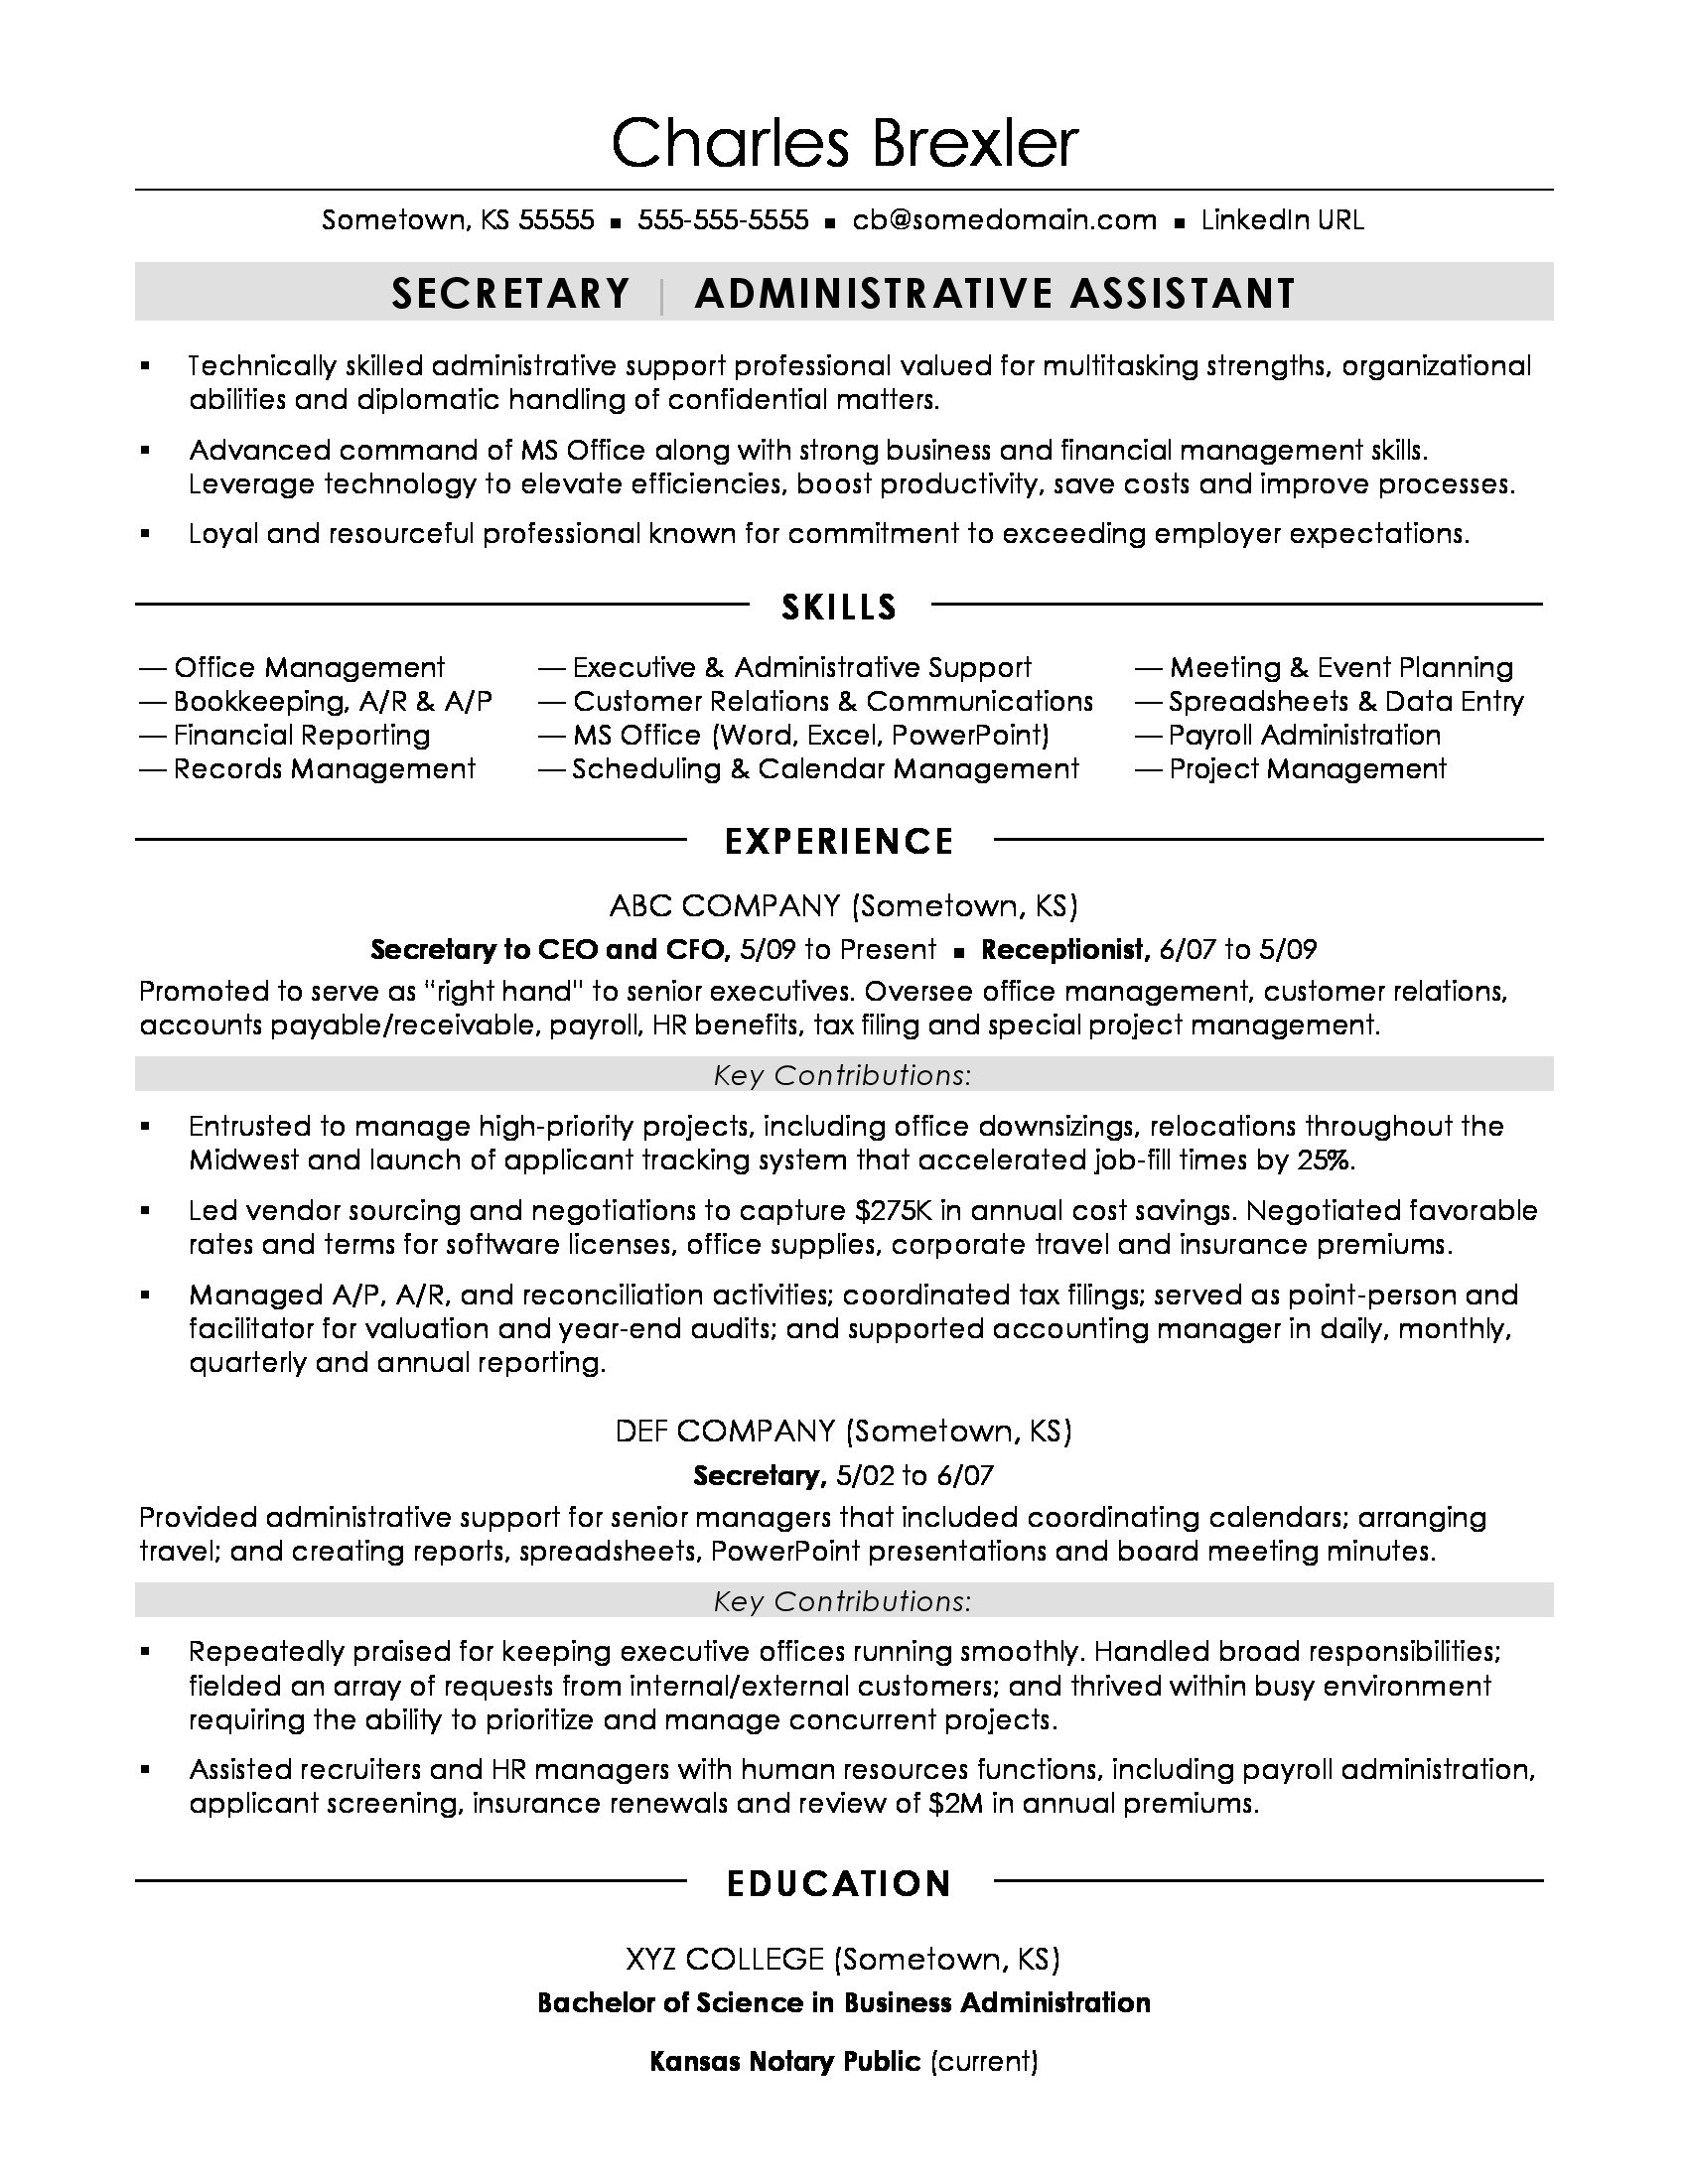 secretary resume sample monster for executive position career aspirations examples manual Resume Sample Resume For Executive Secretary Position